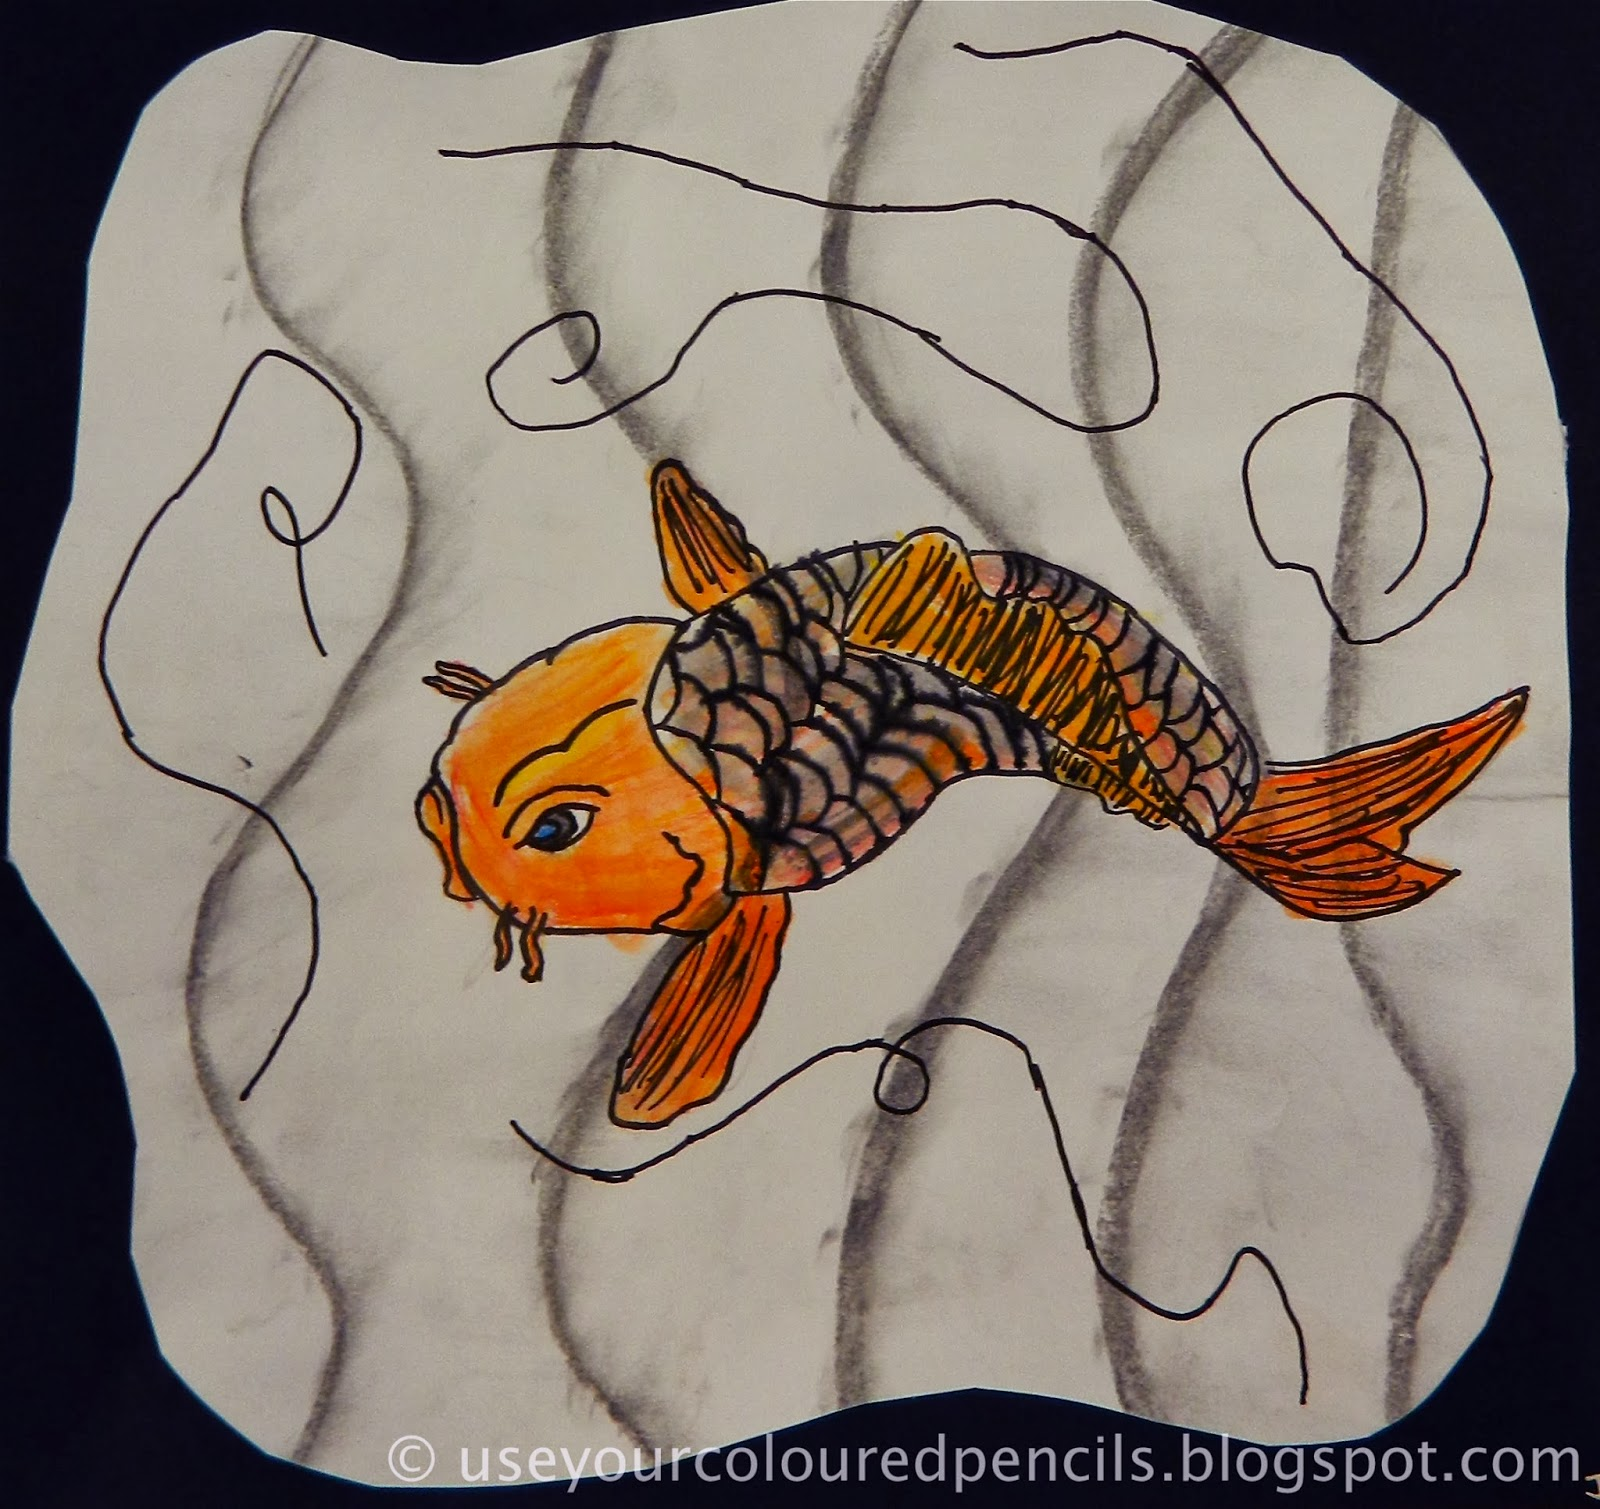 Use your coloured pencils japanese koi fish drawings for Japanese koi fish drawing